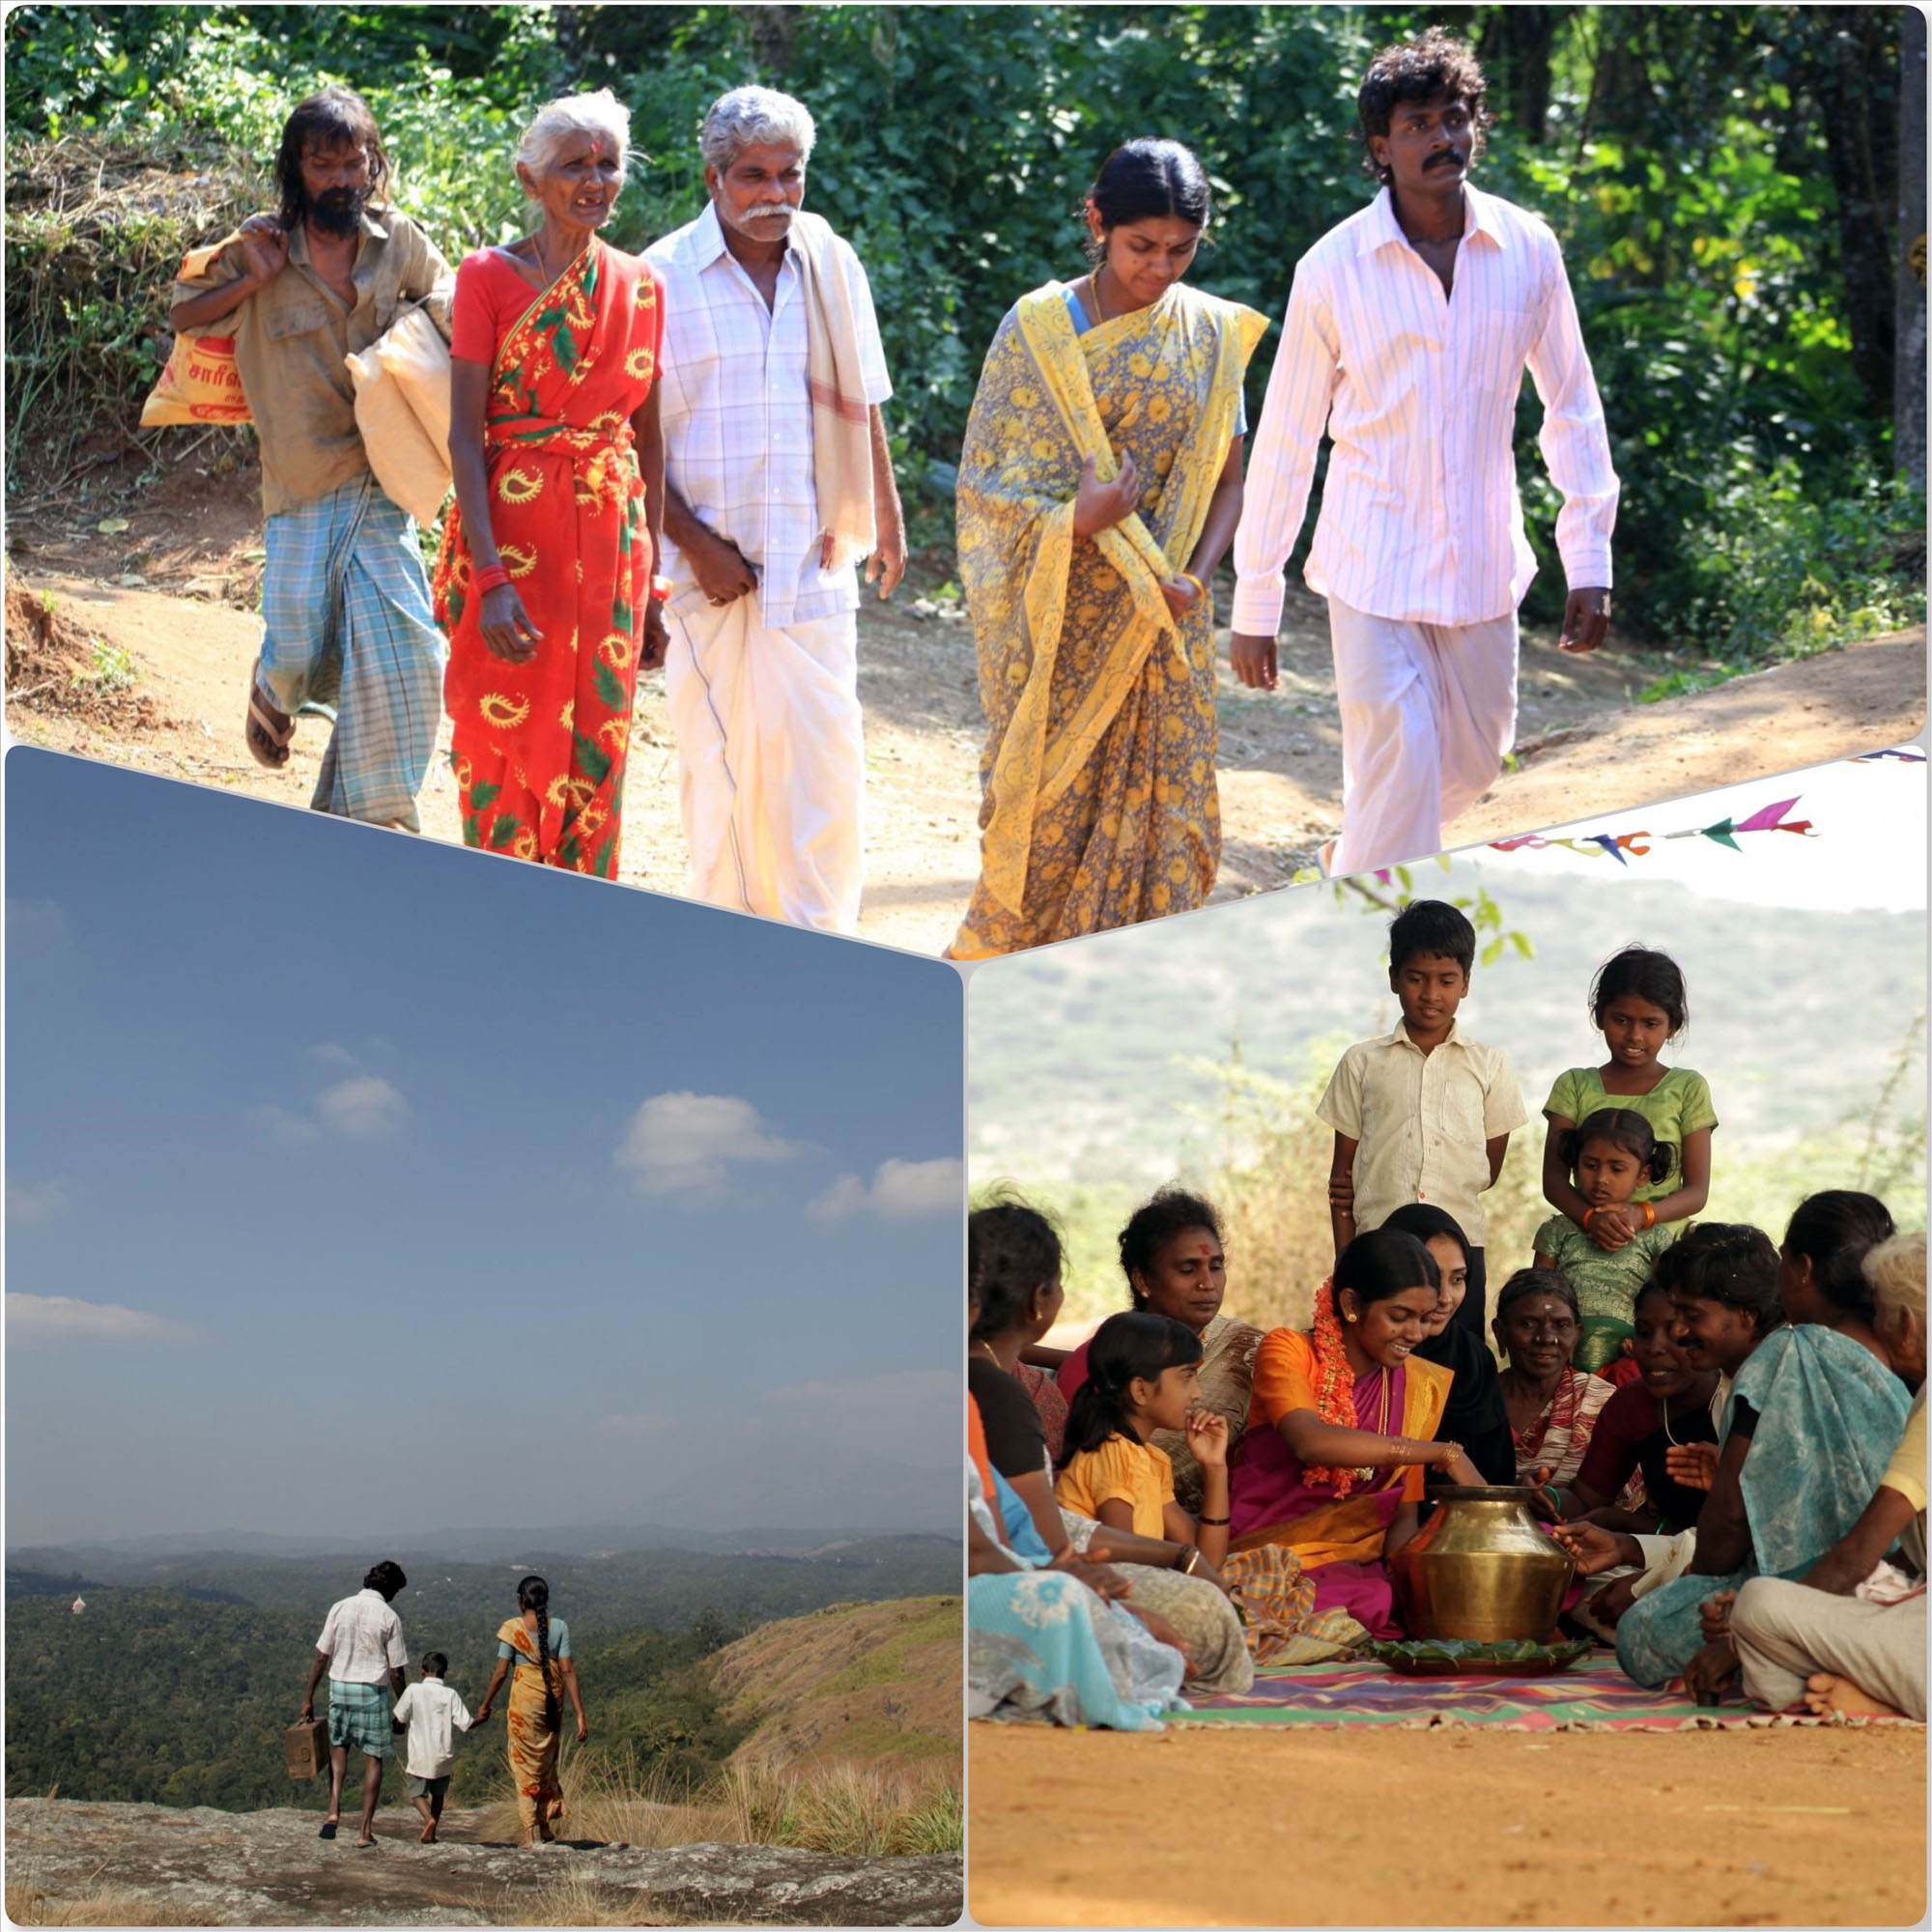 Marriage and the family of Rengusami of Kombai (Tamil Nadu) bordering with Kerala in Western Ghats